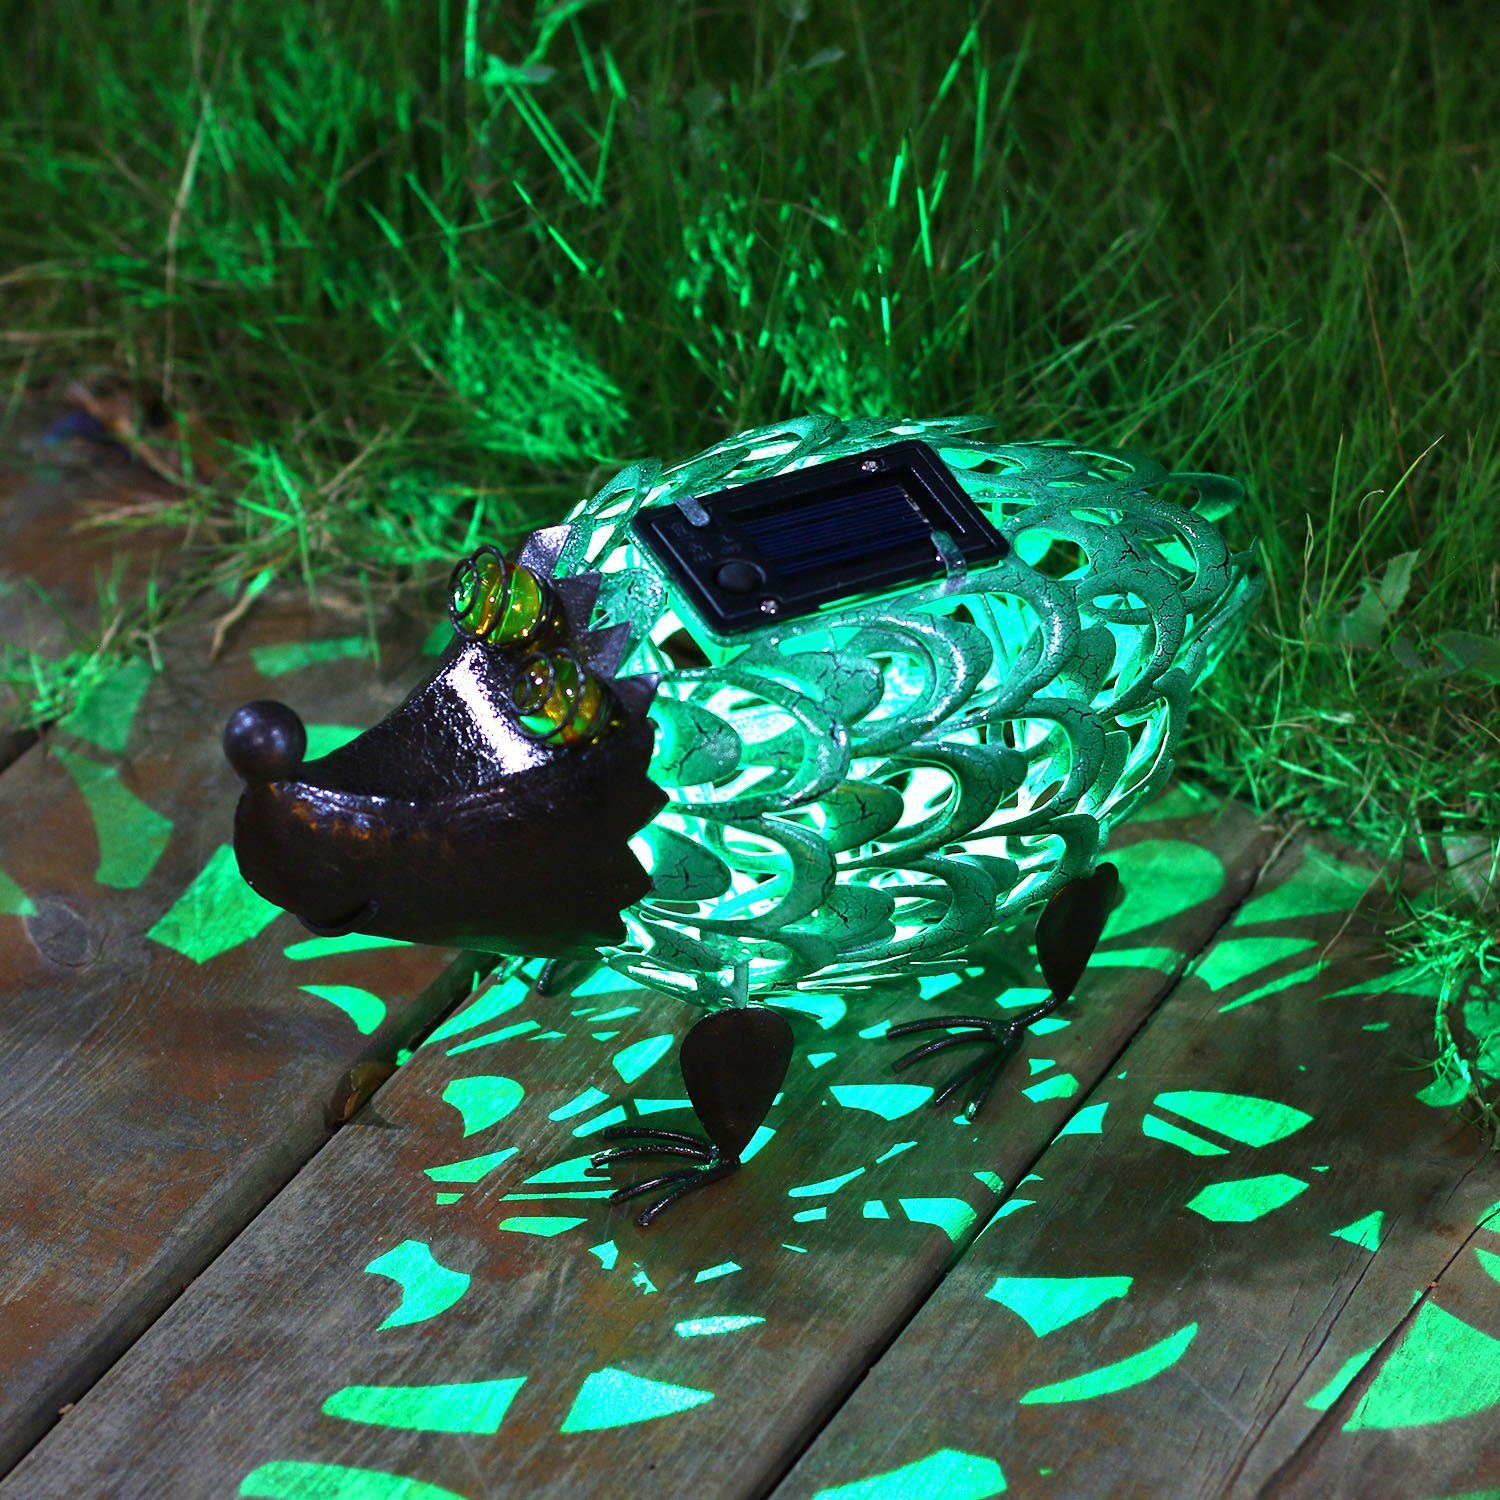 TAKE ME Solar Lights Outdoor Figurines Decor, Cute Owl Solar Light Decorative Metal Warm White LED Decorative Lights for Patio, Lawn, Party TAKEME